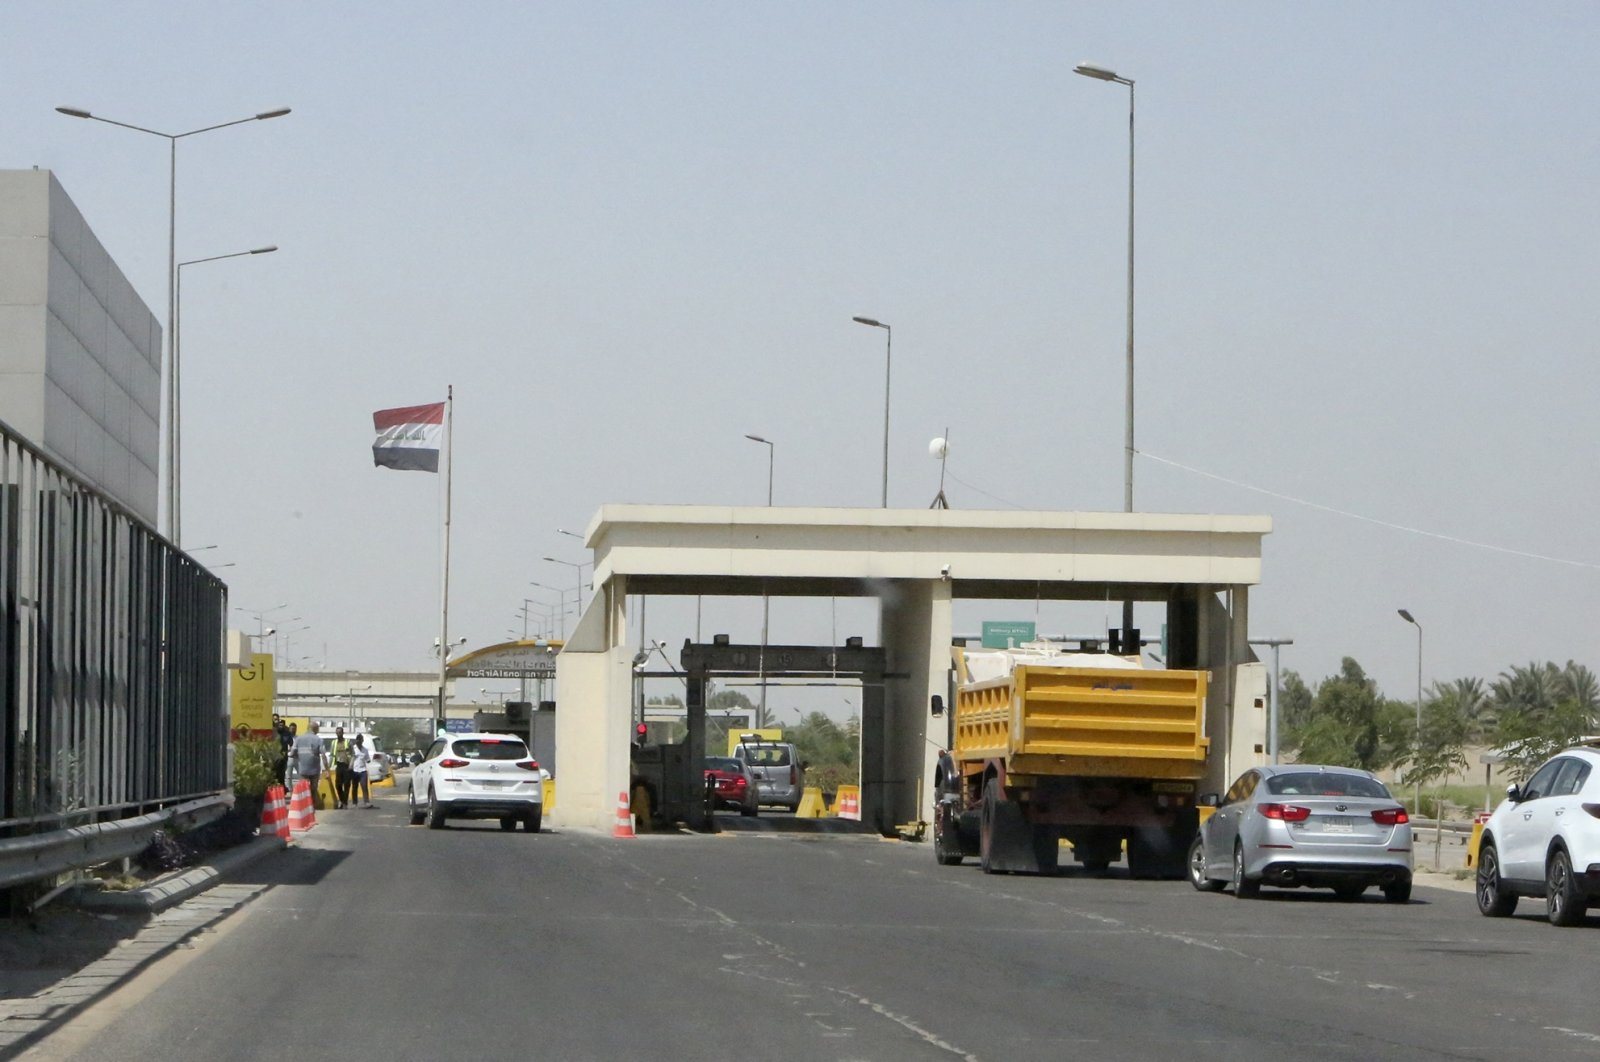 Traffic backs up at the entrance to the Baghdad International Airport, one day after a booby-trapped drone struck the airport area, in the capital Baghdad, Iraq, June 10, 2021. (AFP Photo)